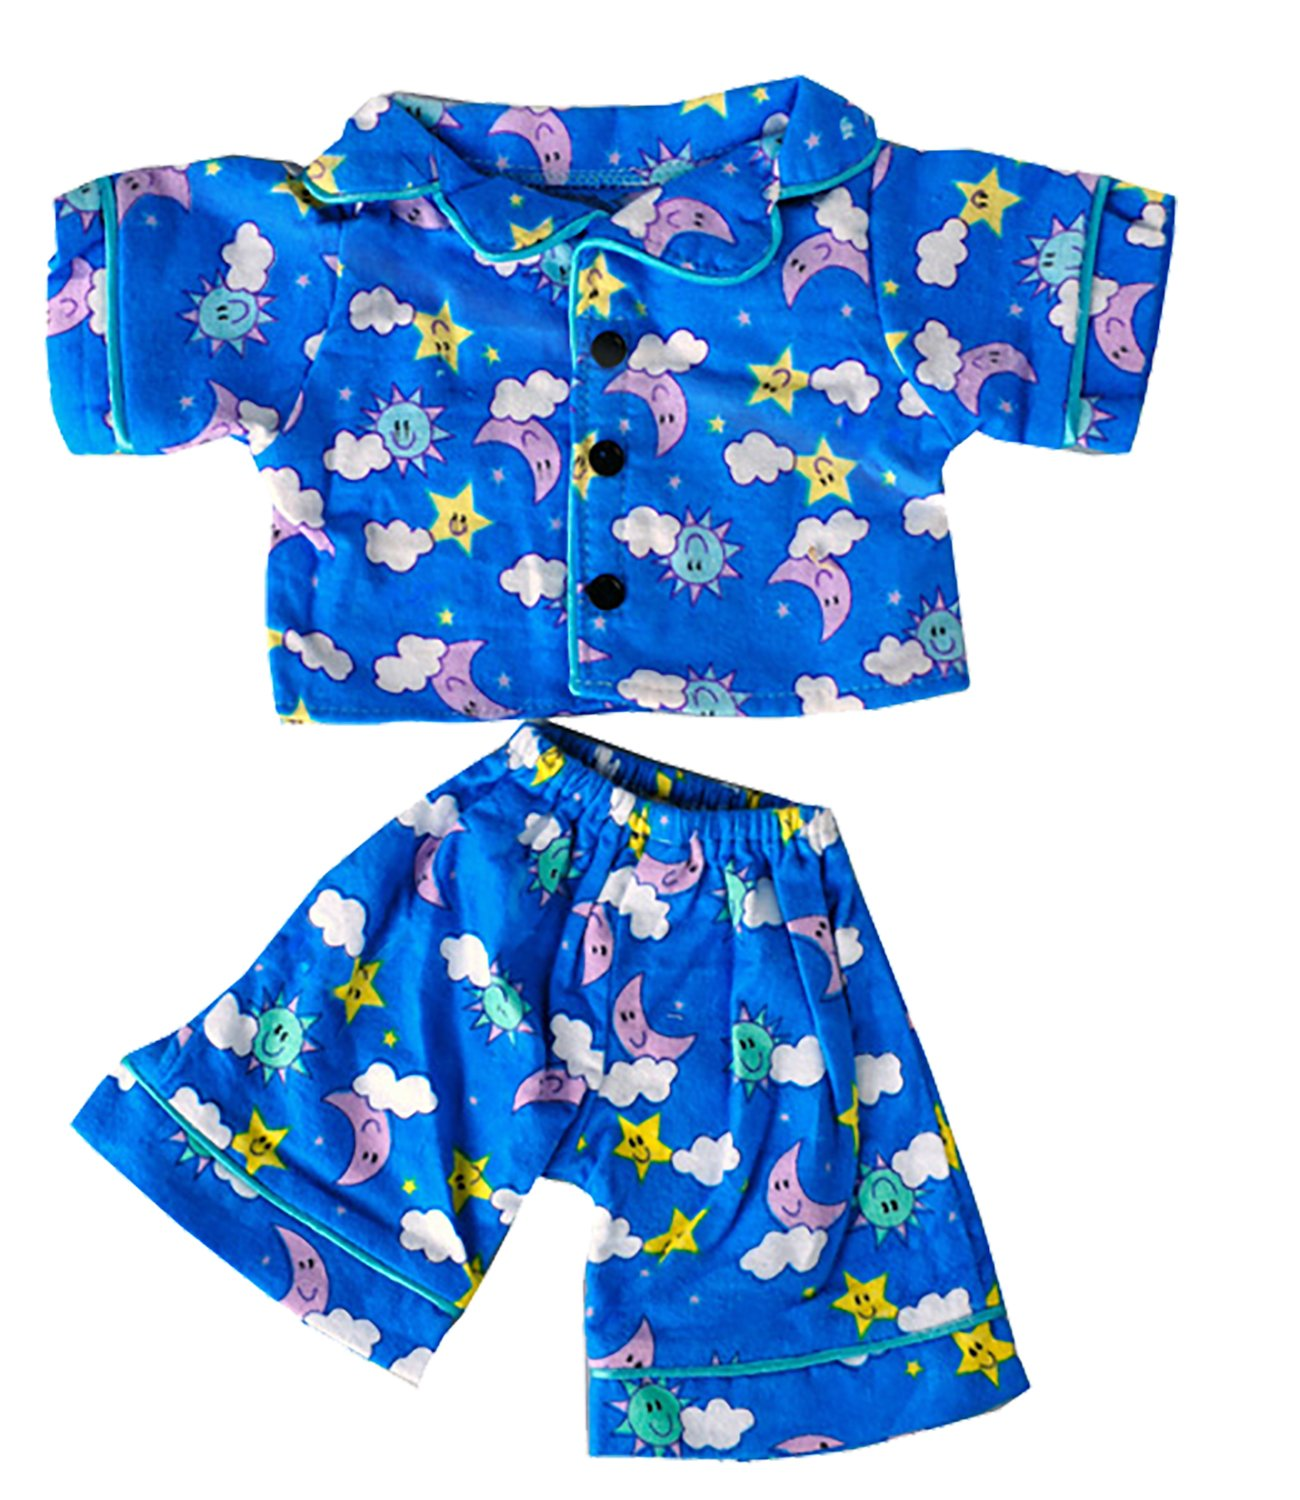 "Teddy Mountain Sunny Days Blue Pj's Teddy Bear Clothes Outfit Fits Most 14"" - 18"" Build a Bear and Make Your Own Stuffed Animals"